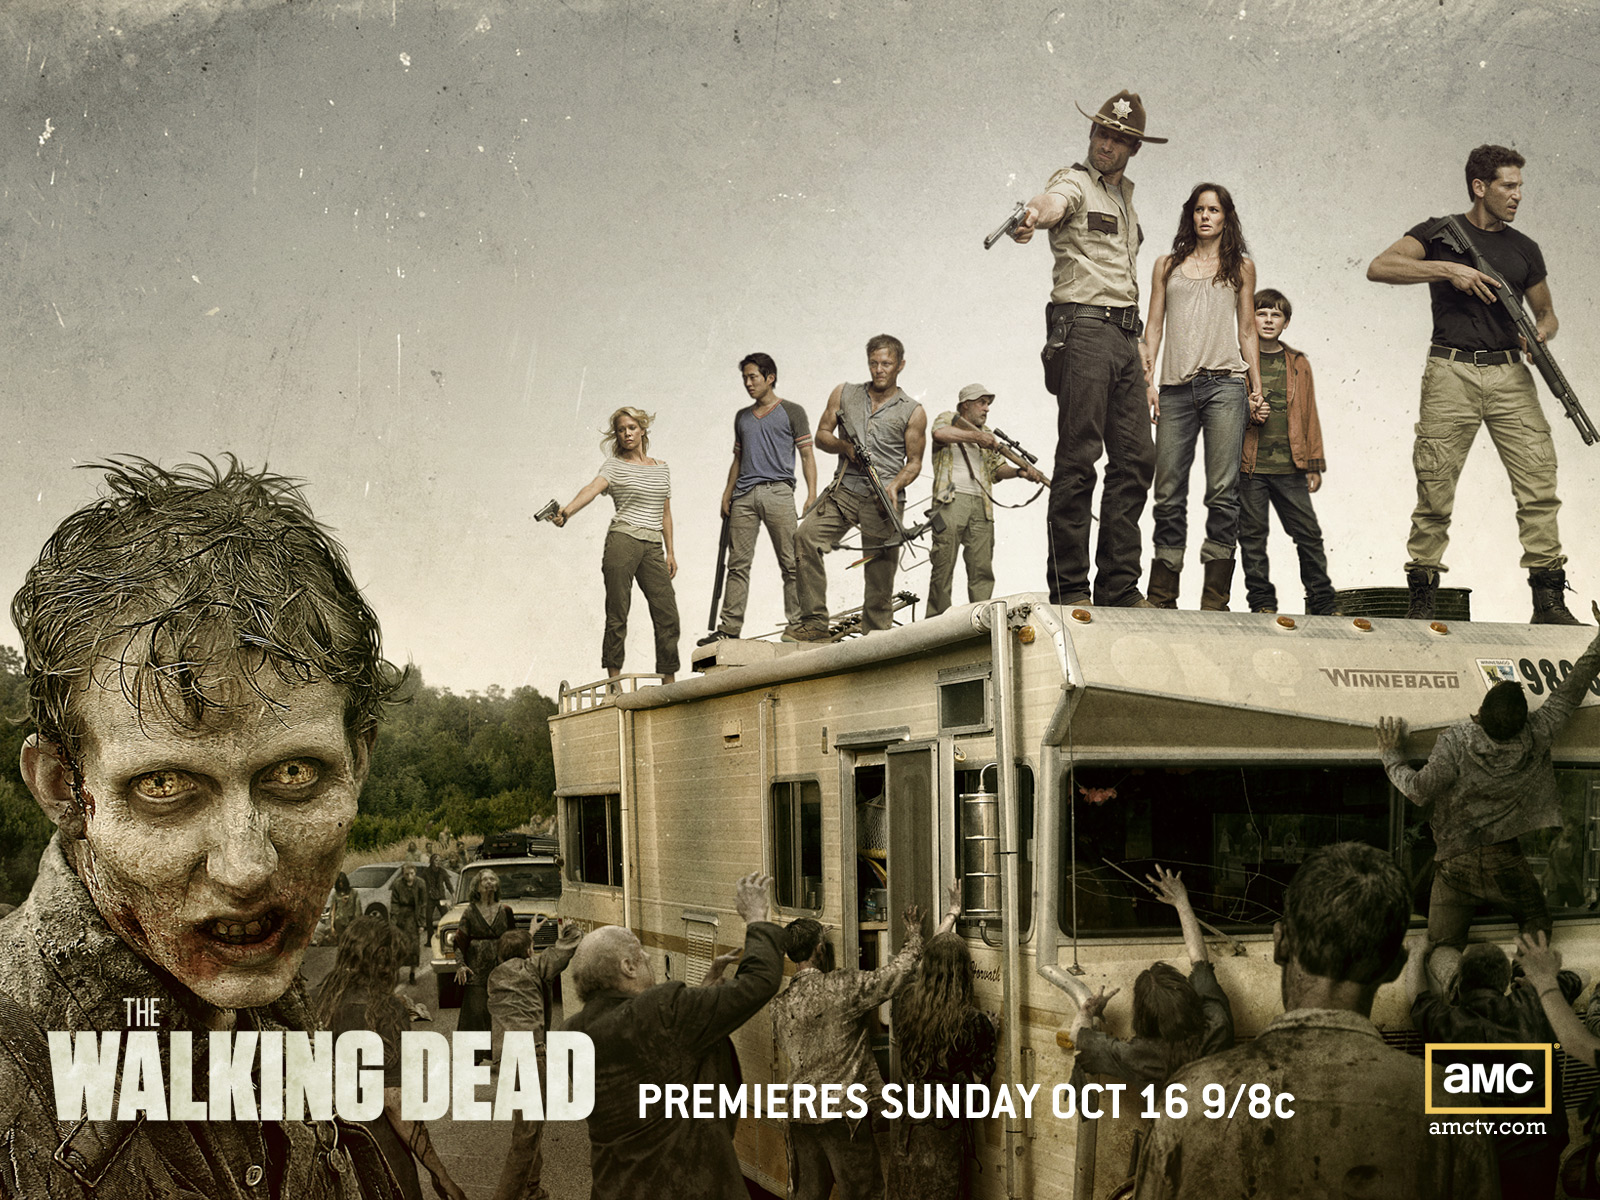 http://3.bp.blogspot.com/-Rx3_vZRcQH4/UHJCIO9AMLI/AAAAAAAABag/3UgLulX4OXY/s1600/Season-2-Wallpaper-the-walking-dead-25689003-1600-1200.jpg